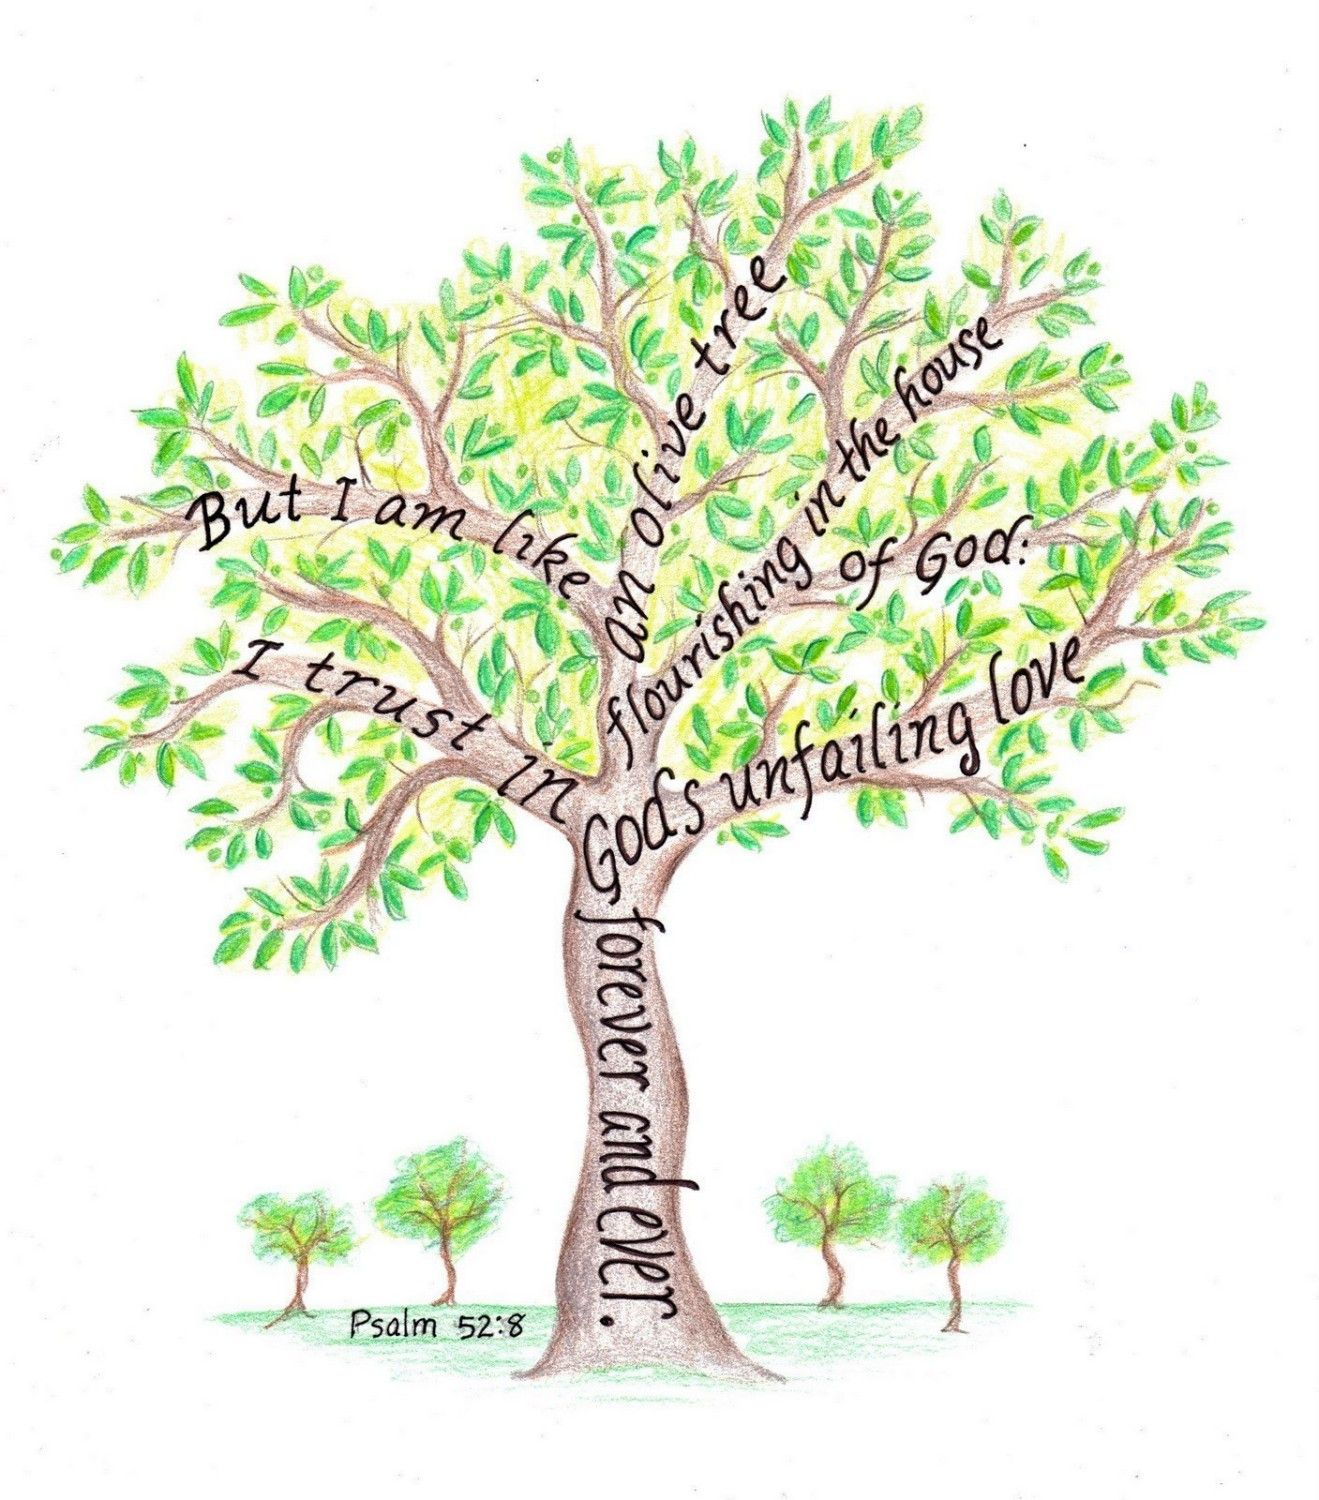 Tree pictures with scripture verses | Olive tree drawing ...